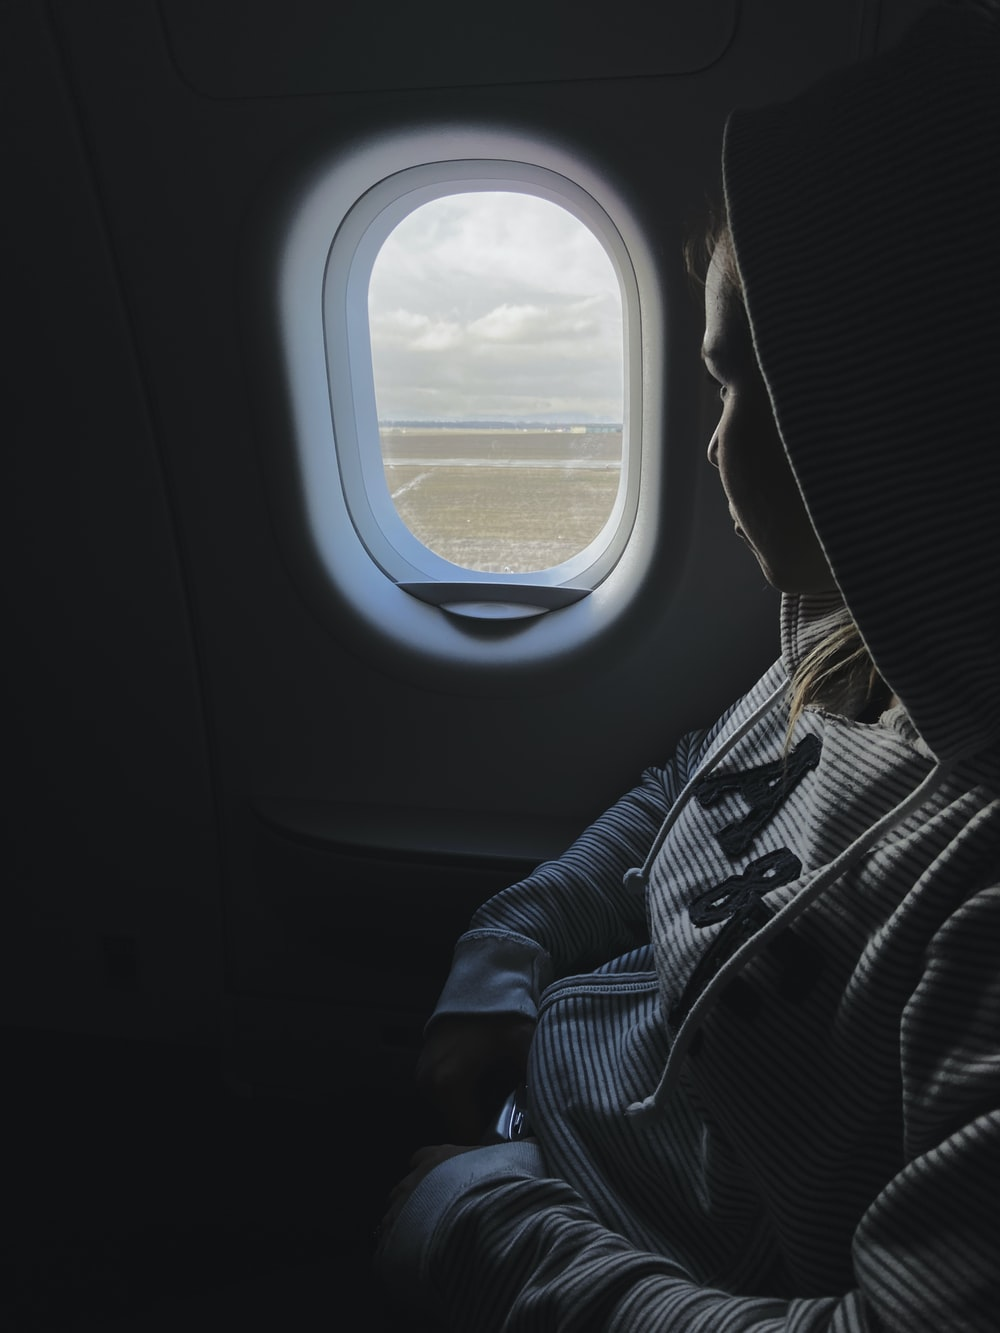 person riding airplane